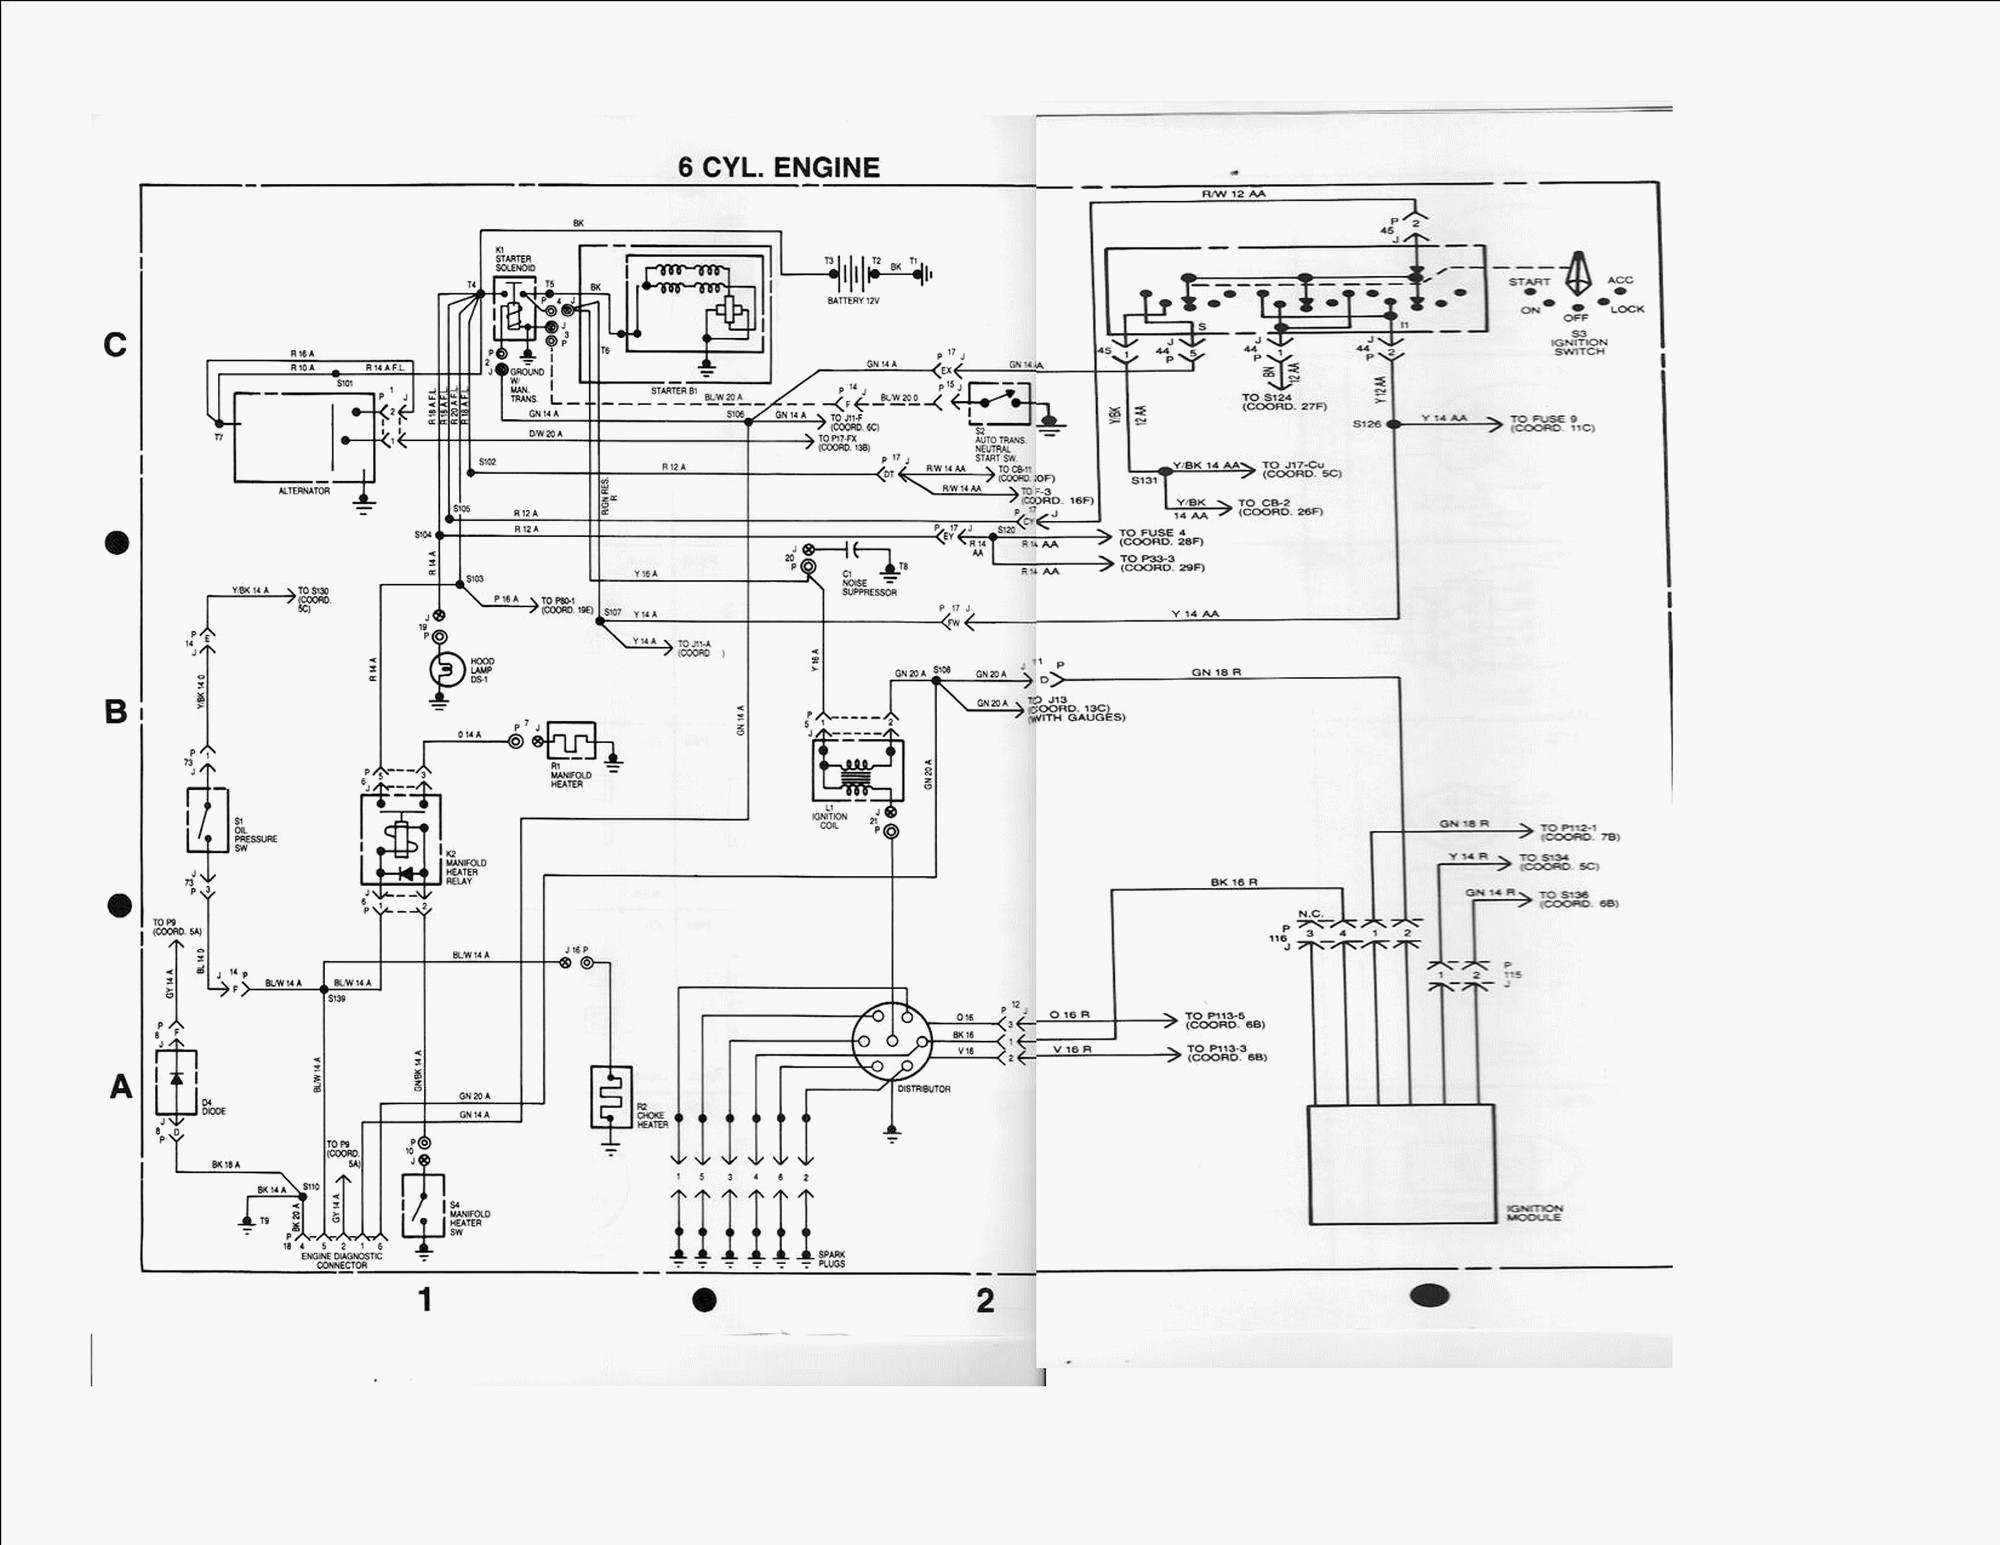 1969 amc amx wiring diagram wiring diagram expertsamx wiring diagram diagram data schema 1969 amc amx wiring diagram